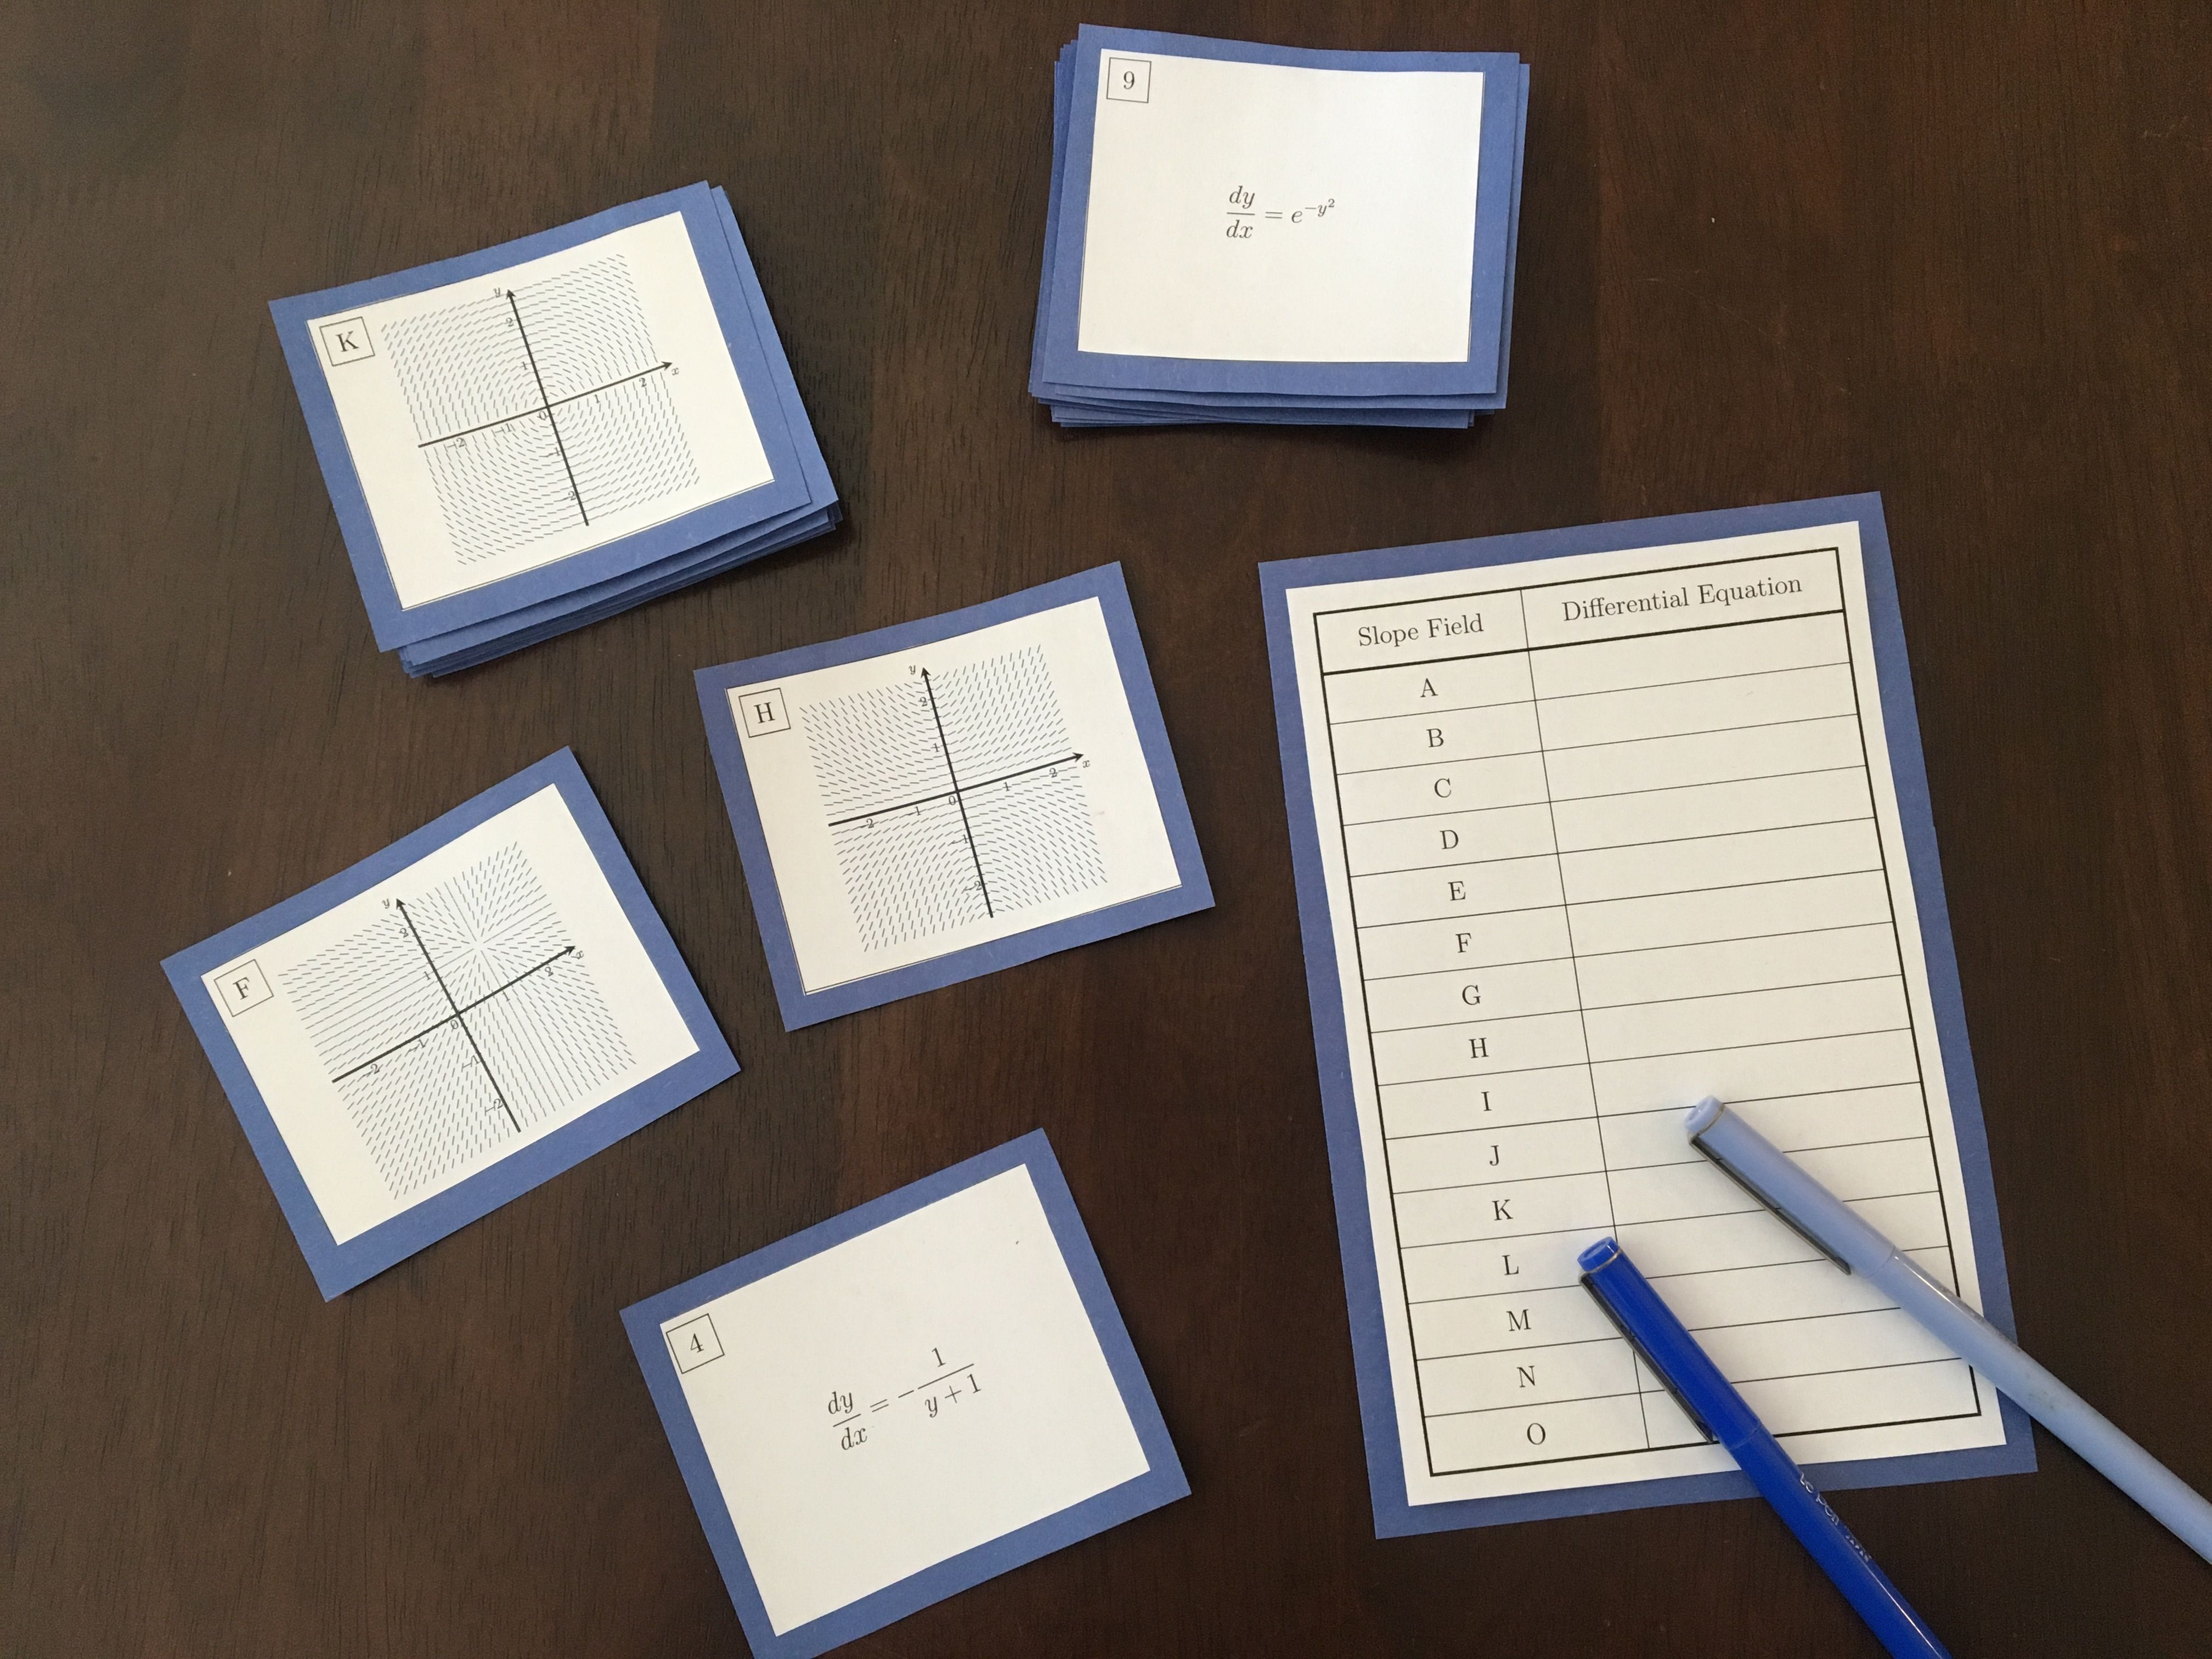 Ap Calculus Slope Fields Matching Activity